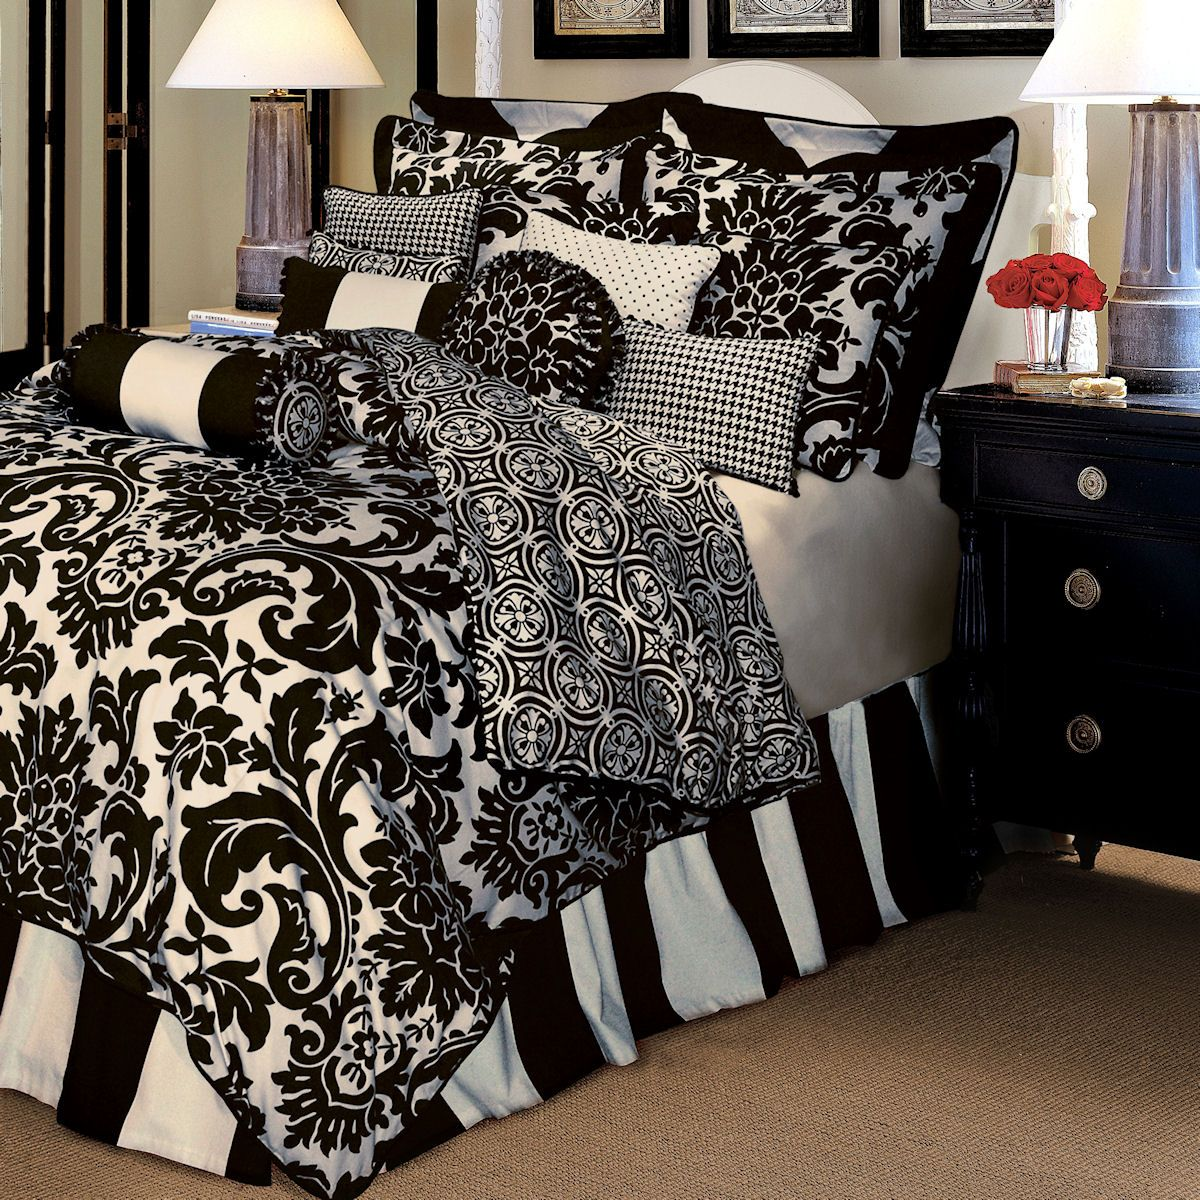 Black and white bedding walmart - 17 Images About Bedding On Pinterest Sheets Bedding Queen Bedding Sets And Luxury Bedding 17